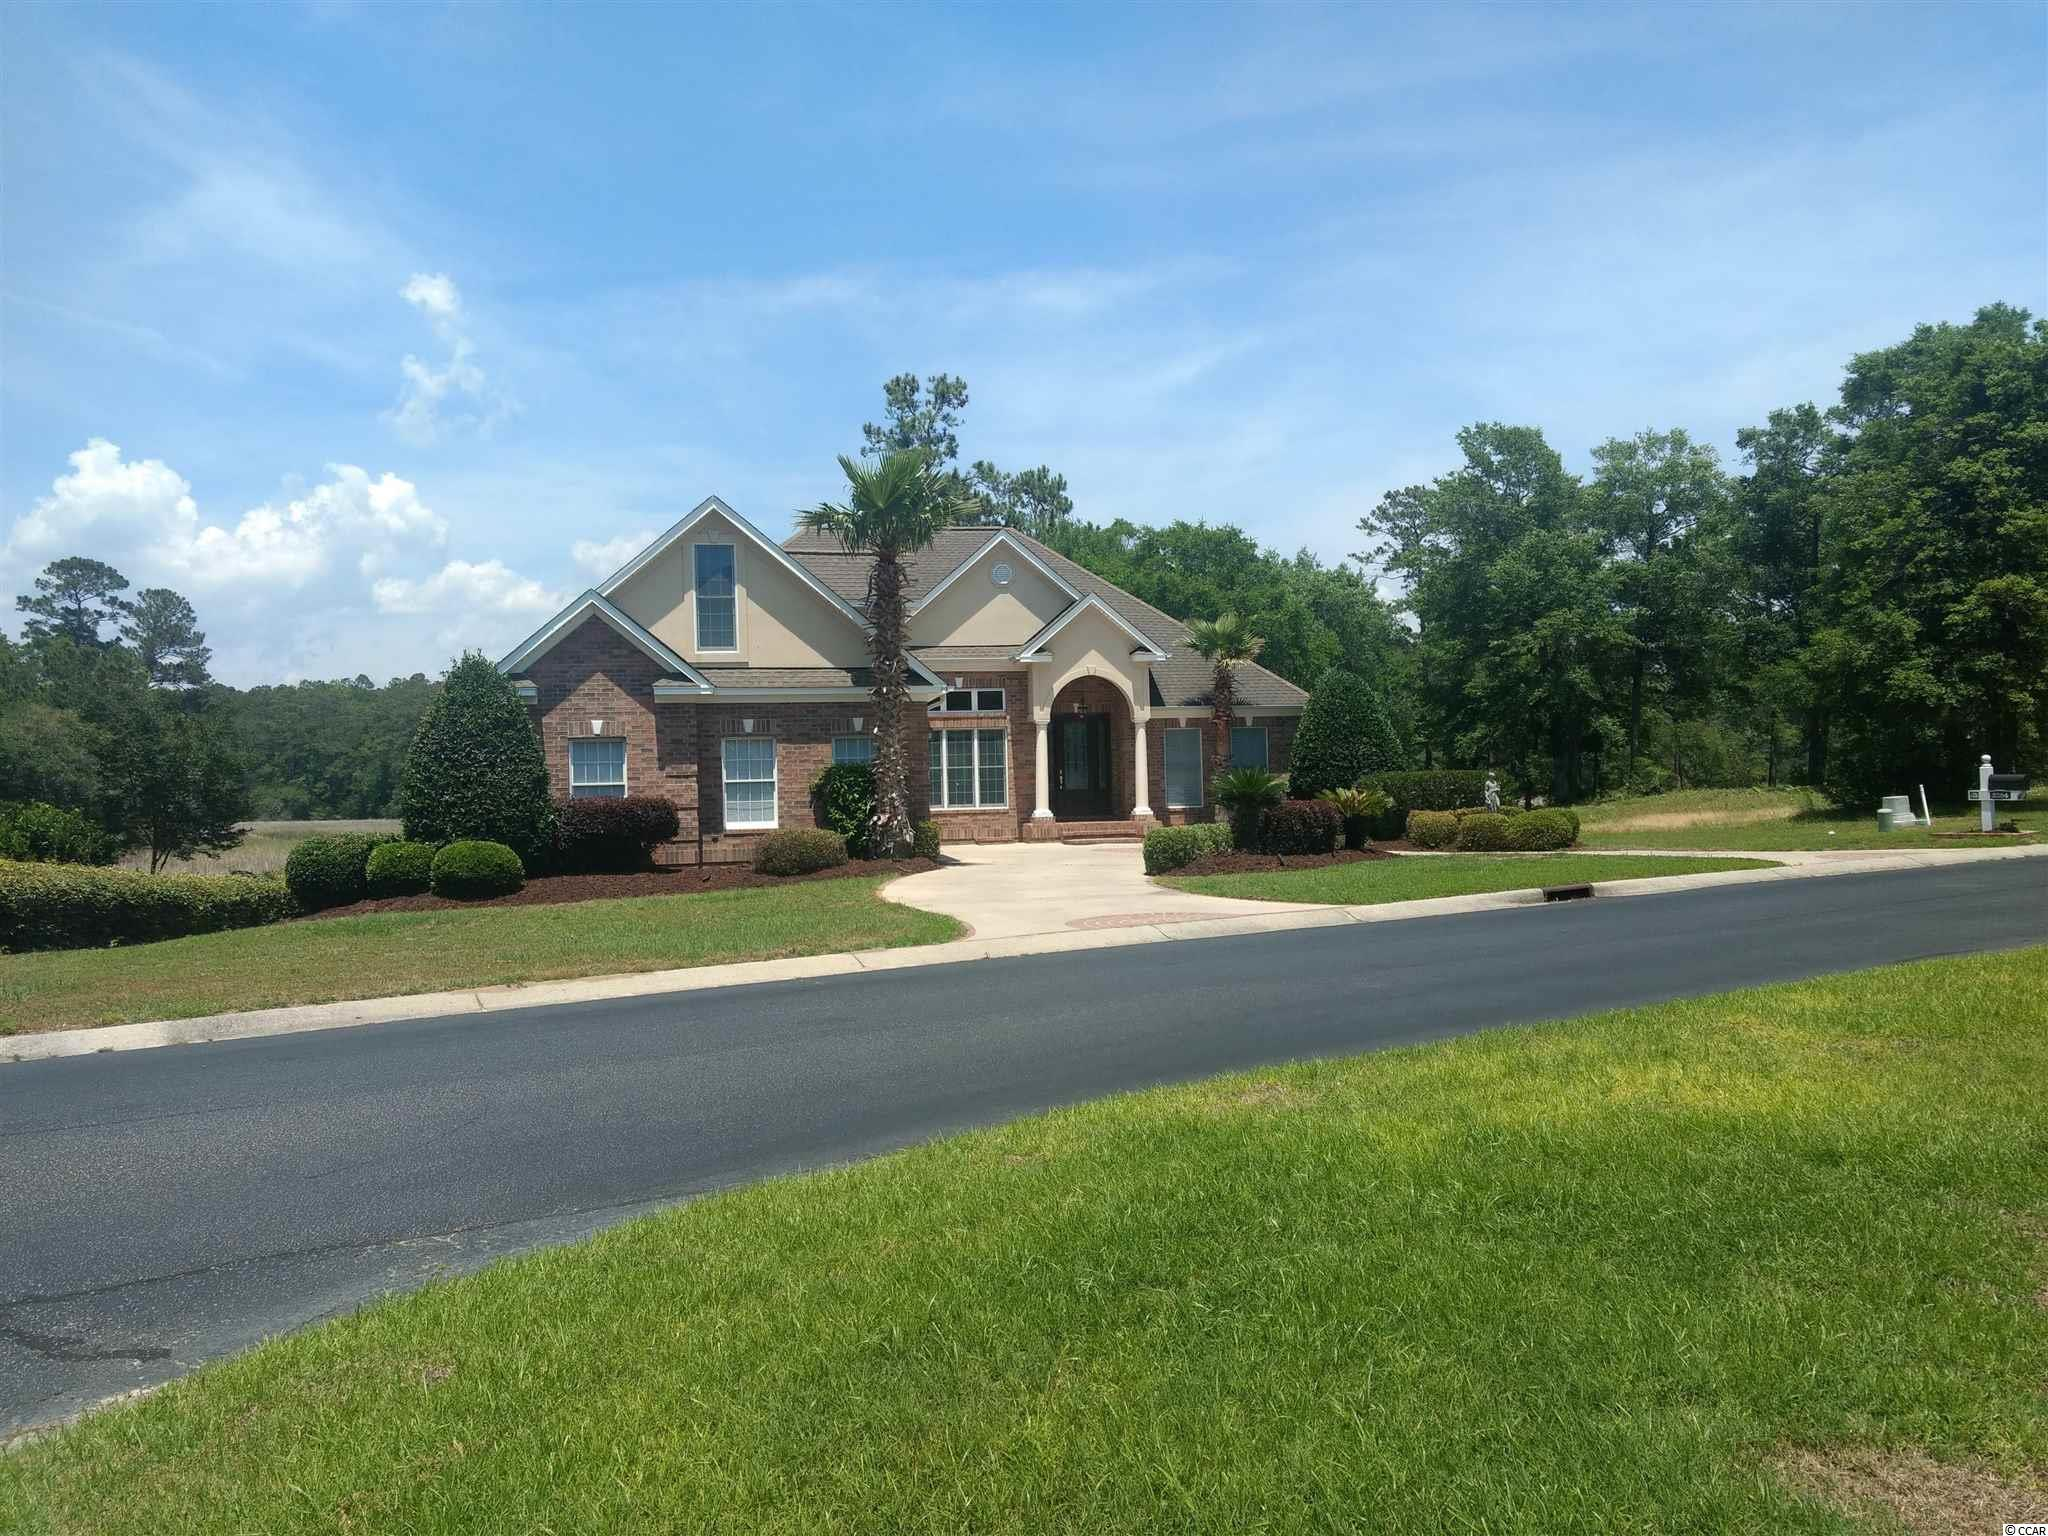 This marsh/creek front custom built executive home is in the gated community of Big Landing Plantation.  The community offers a clubhouse w/pool and ICW pier.  Owner is a licensed SC Realtor.  This custom built home contains many extras such as granite wet bar, low profile gas log fire place, Anderson windows/doors, undermounted Ipe deck on the marsh, tongue & groove oak floor , 12 ft ceiling, custom moldings in main living area, custom window treatments, on demand thankless Rinnai hot water heater, professionally designed pantry & master closet, stainless appliances such as Jenn-Air gas stove, GE Winecooler & beverage cooler, new GE dishwasher.  When a power outage occurs, the Briggs & Stratton Standby Generator will start immediately.  This generator is powered by the 500 gallon, in ground tank.